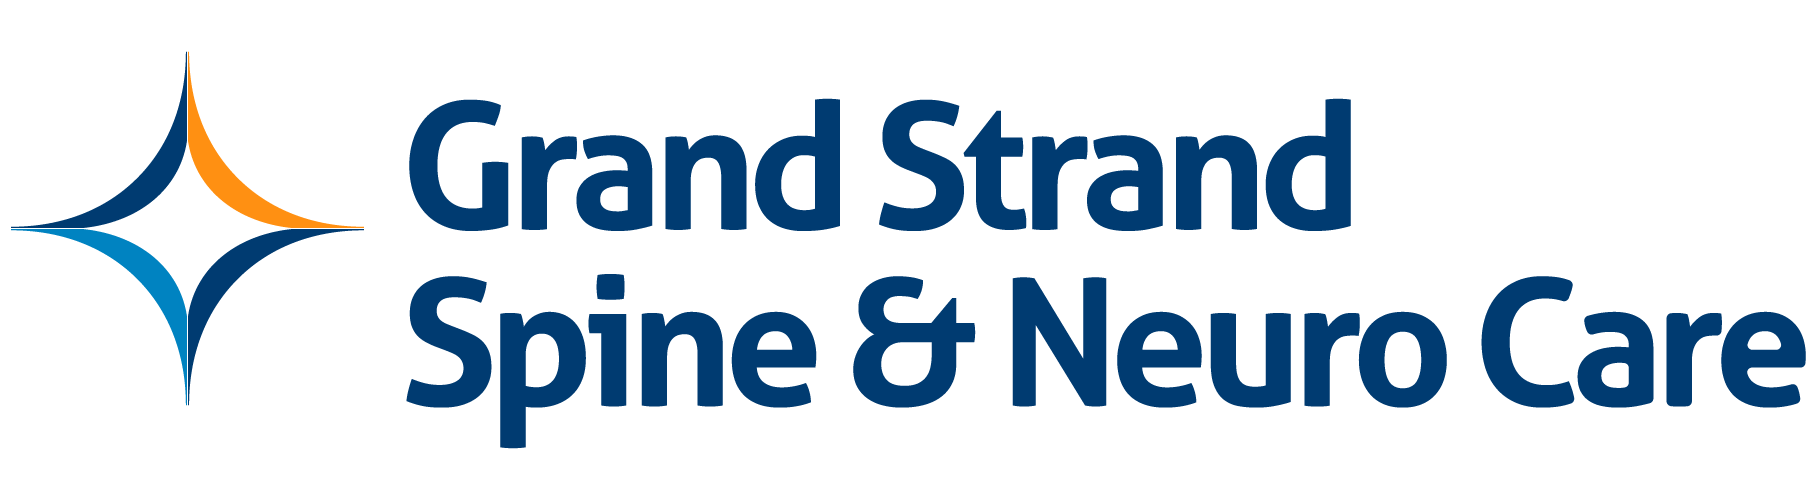 Grand Strand Spine & Neuro Care